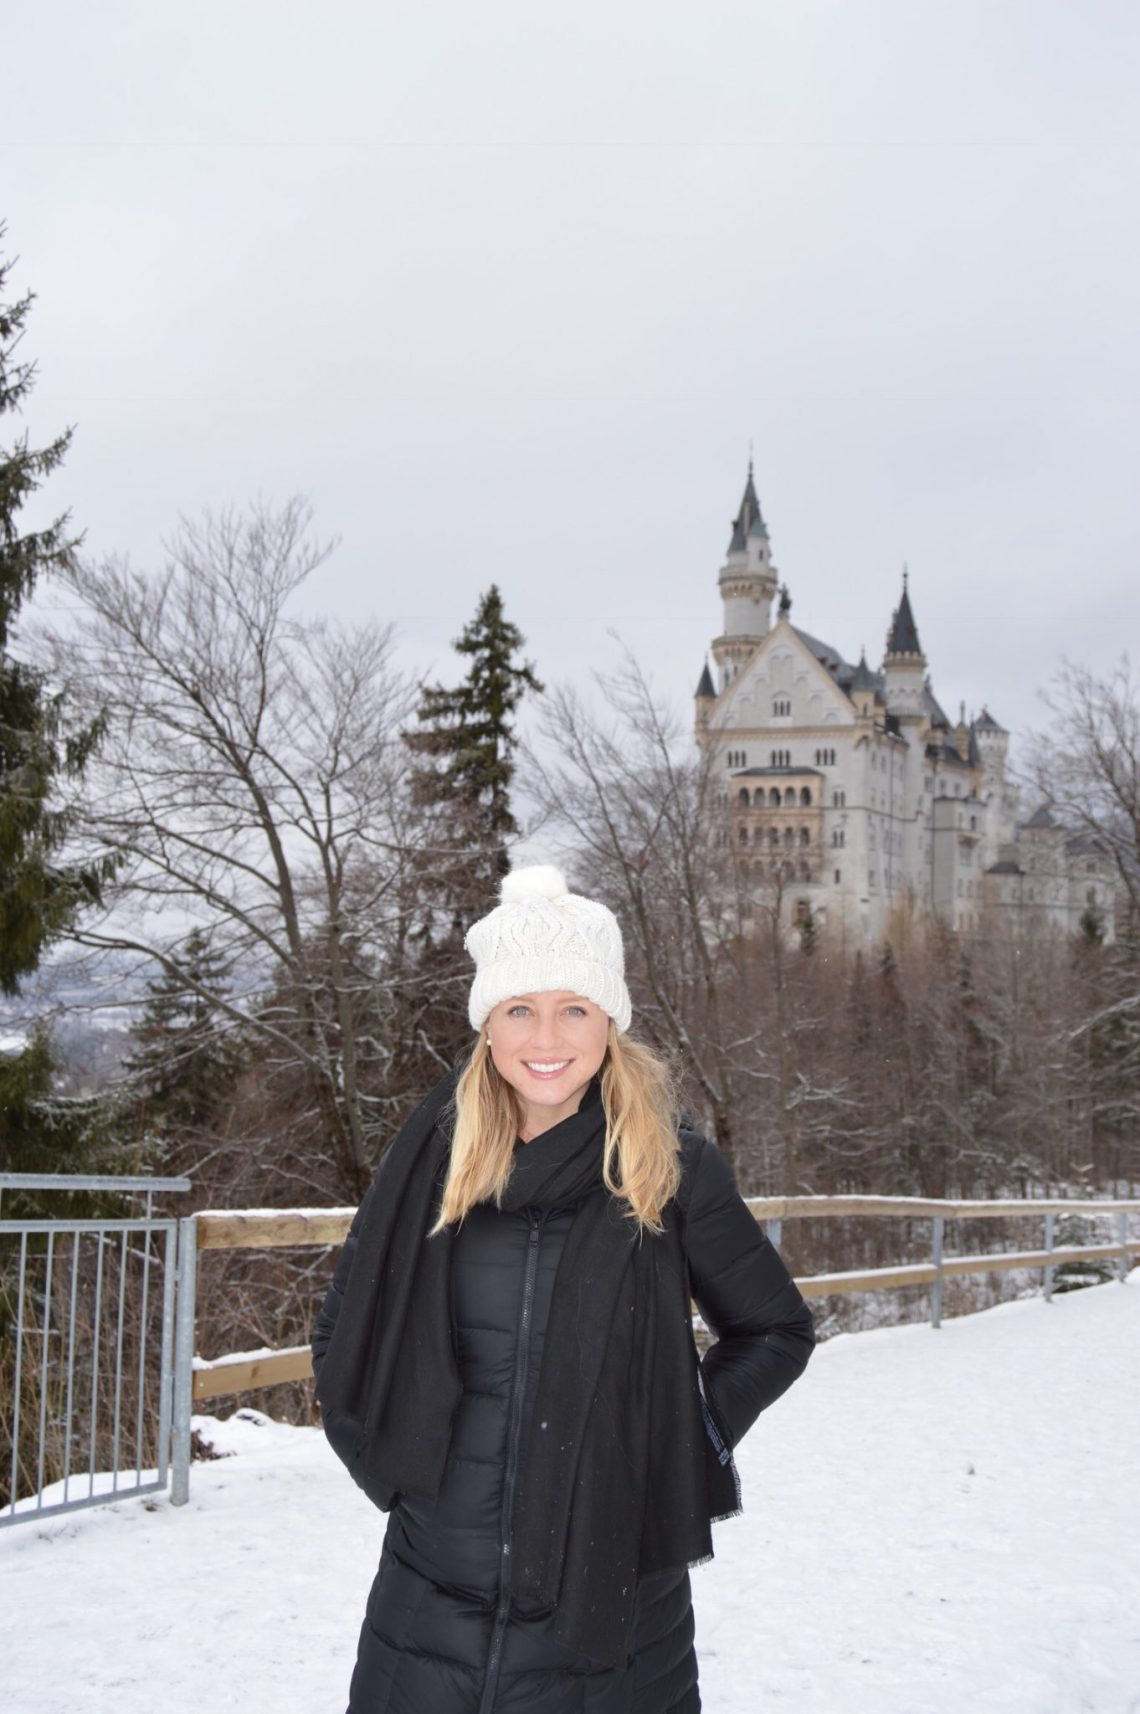 Neuschwanstein Castle Complete Guide to the Disney Castle in Germany